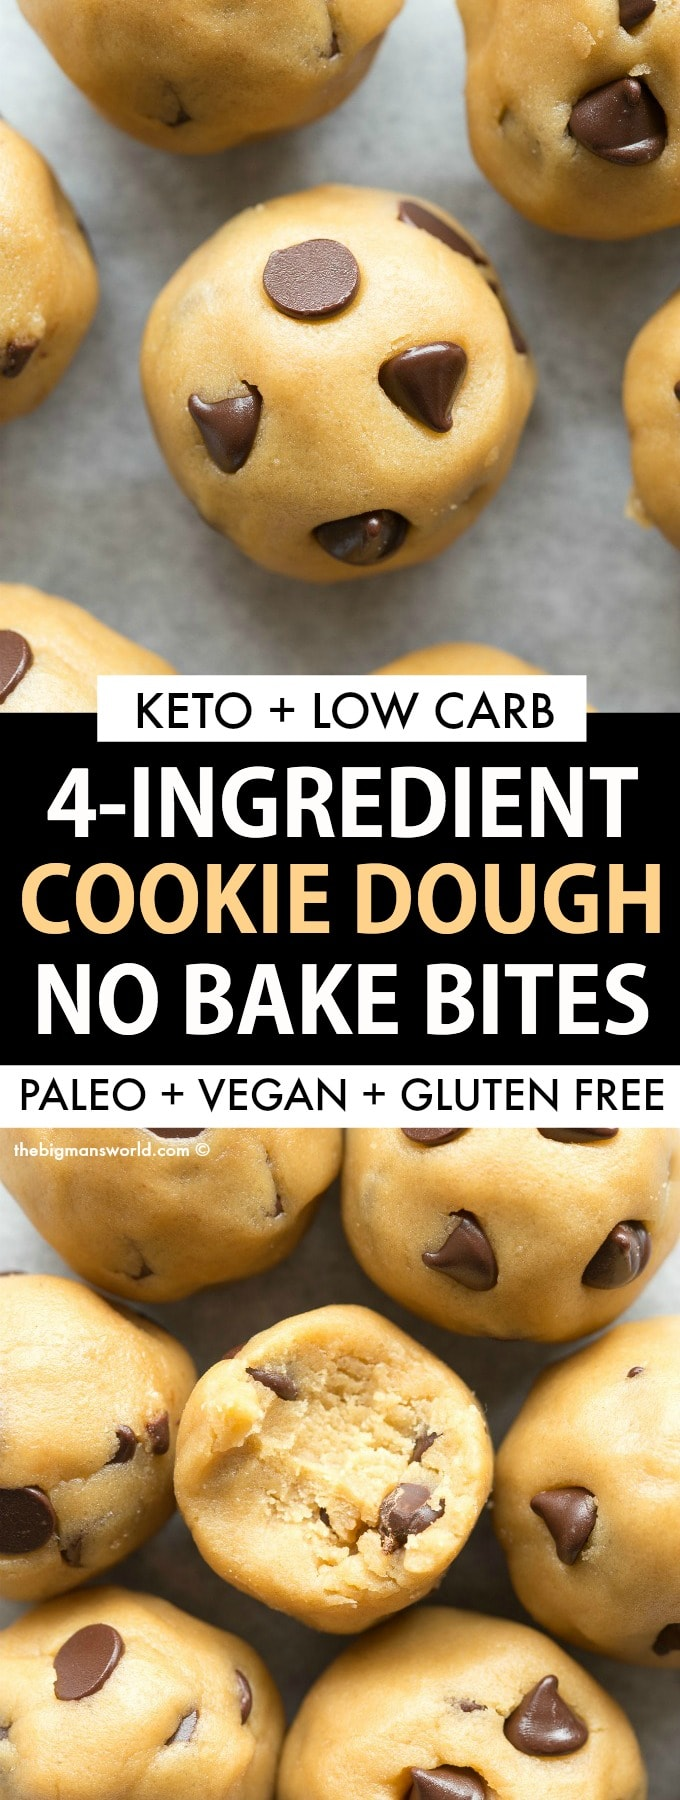 Paleo Vegan Keto No Bake Cookie Dough Bites Recipe